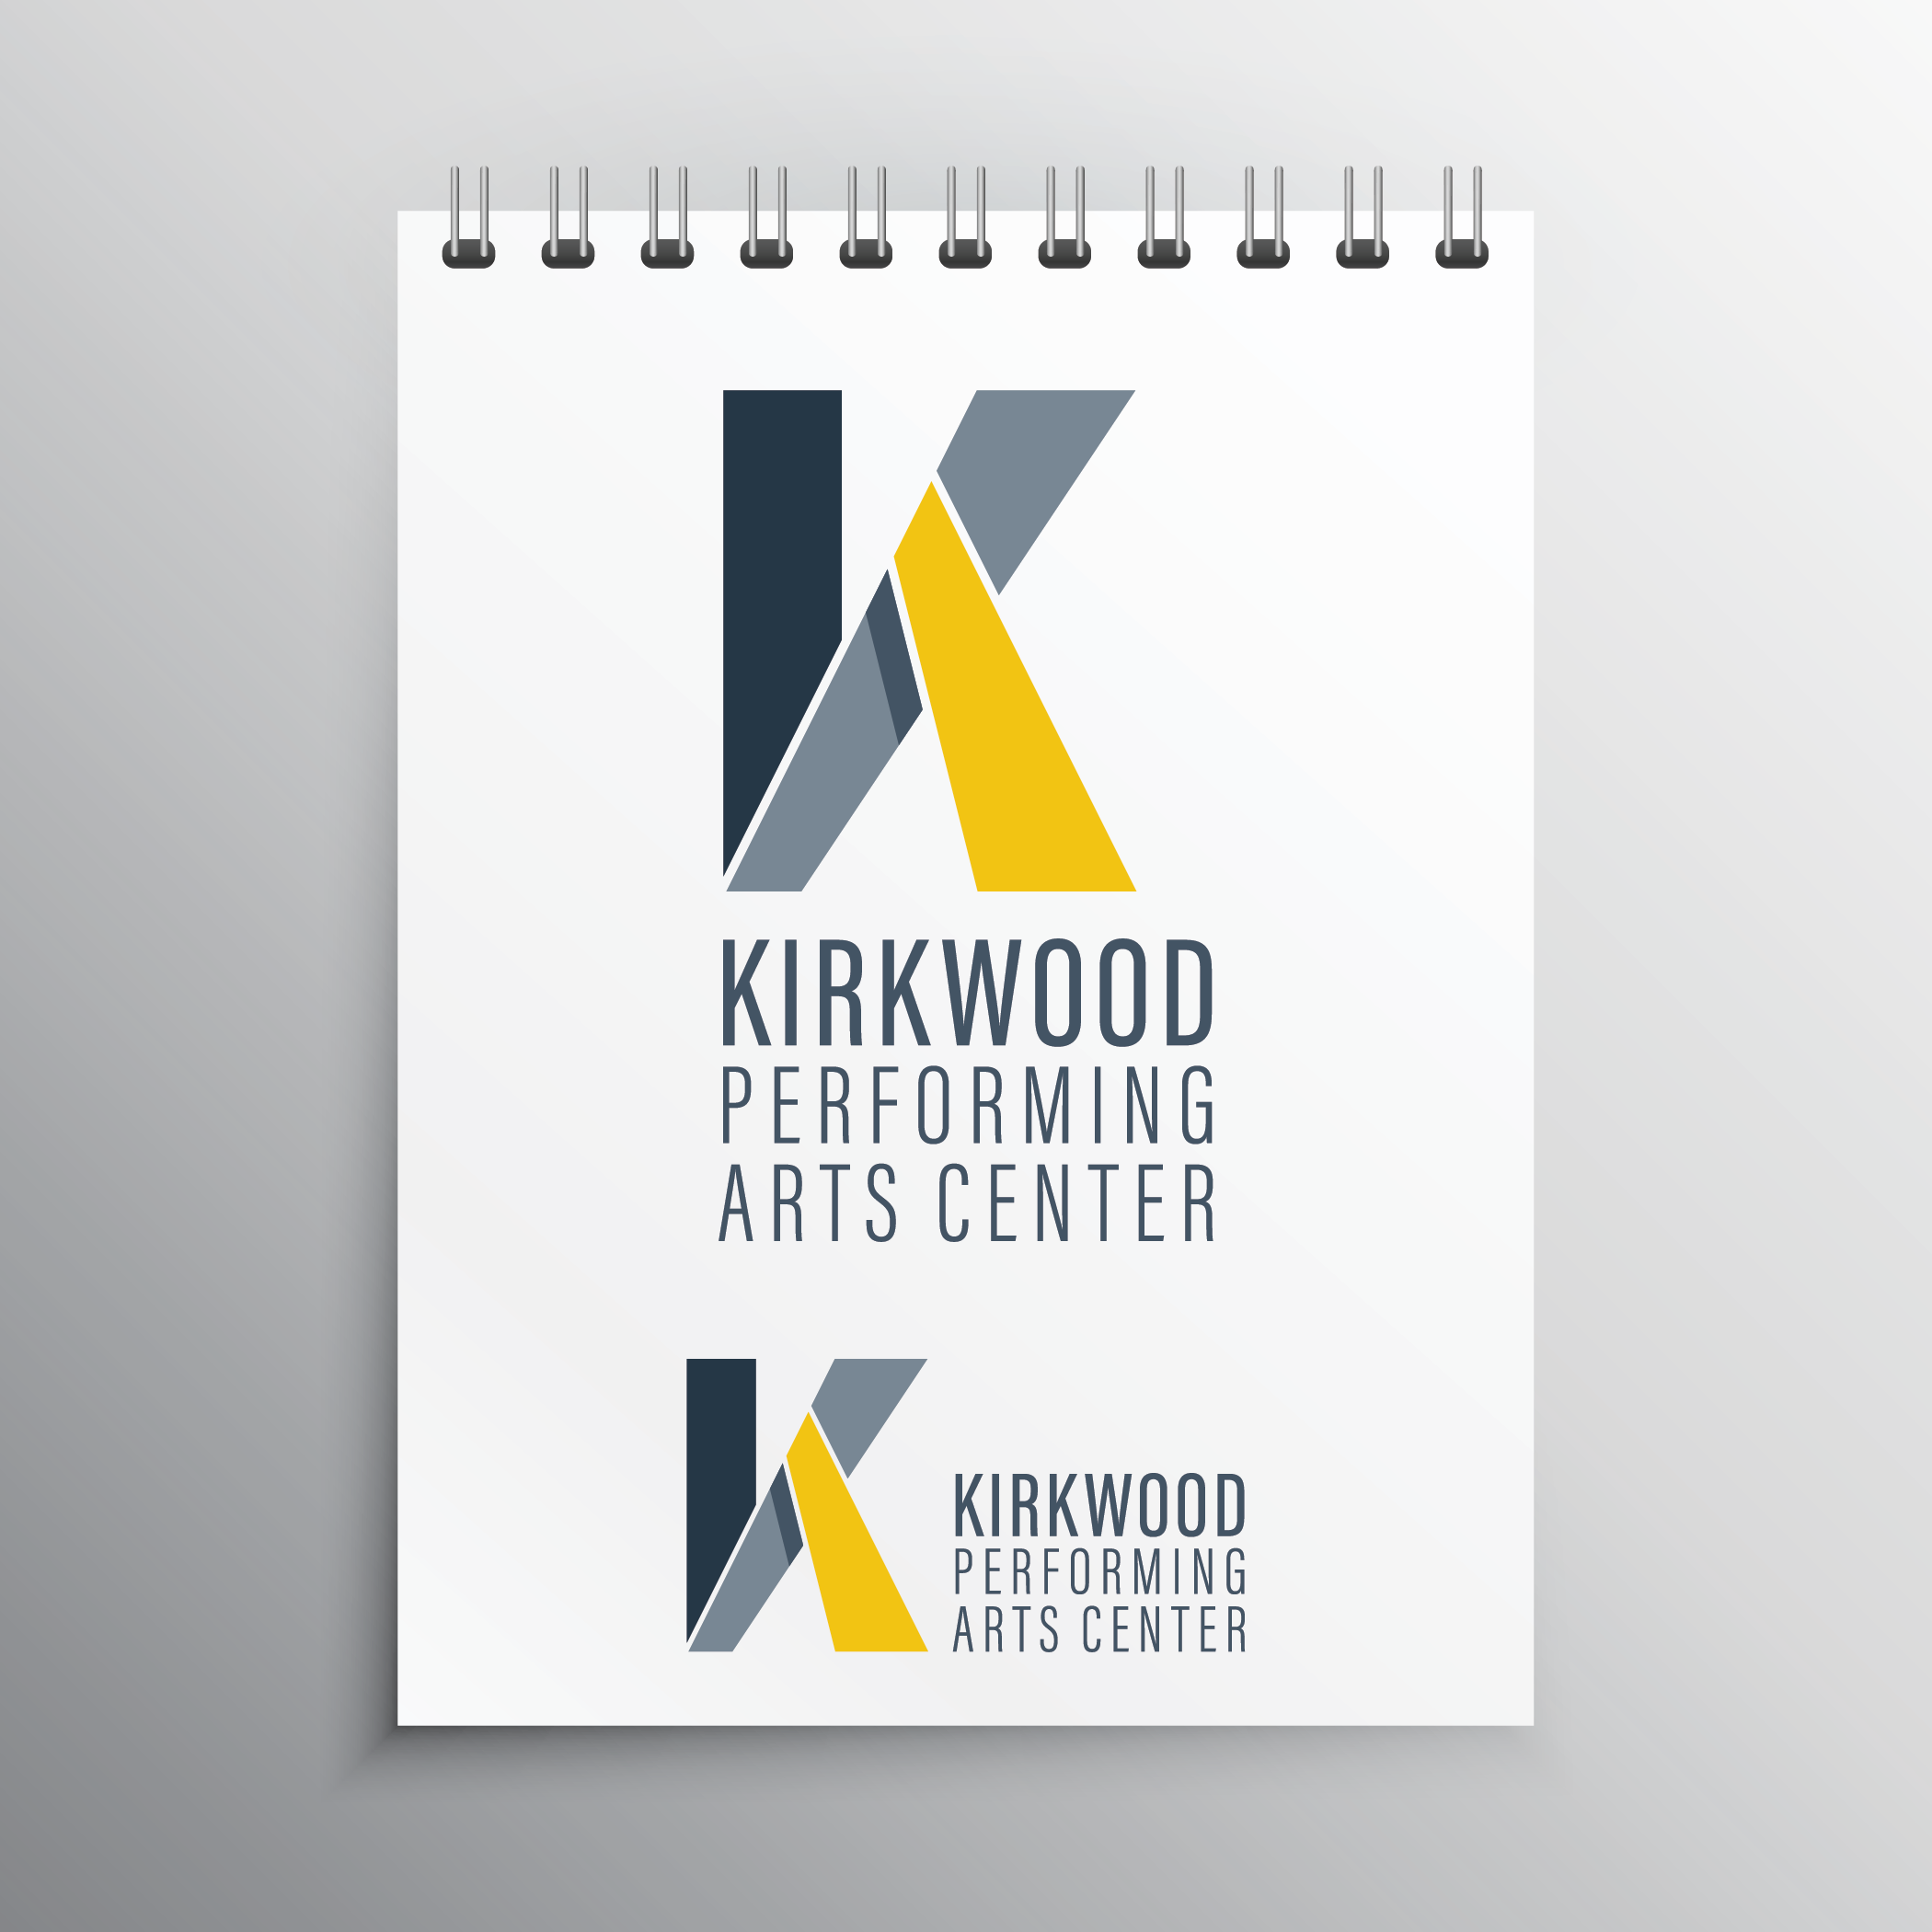 Kirkwood Performing Arts Center Logos